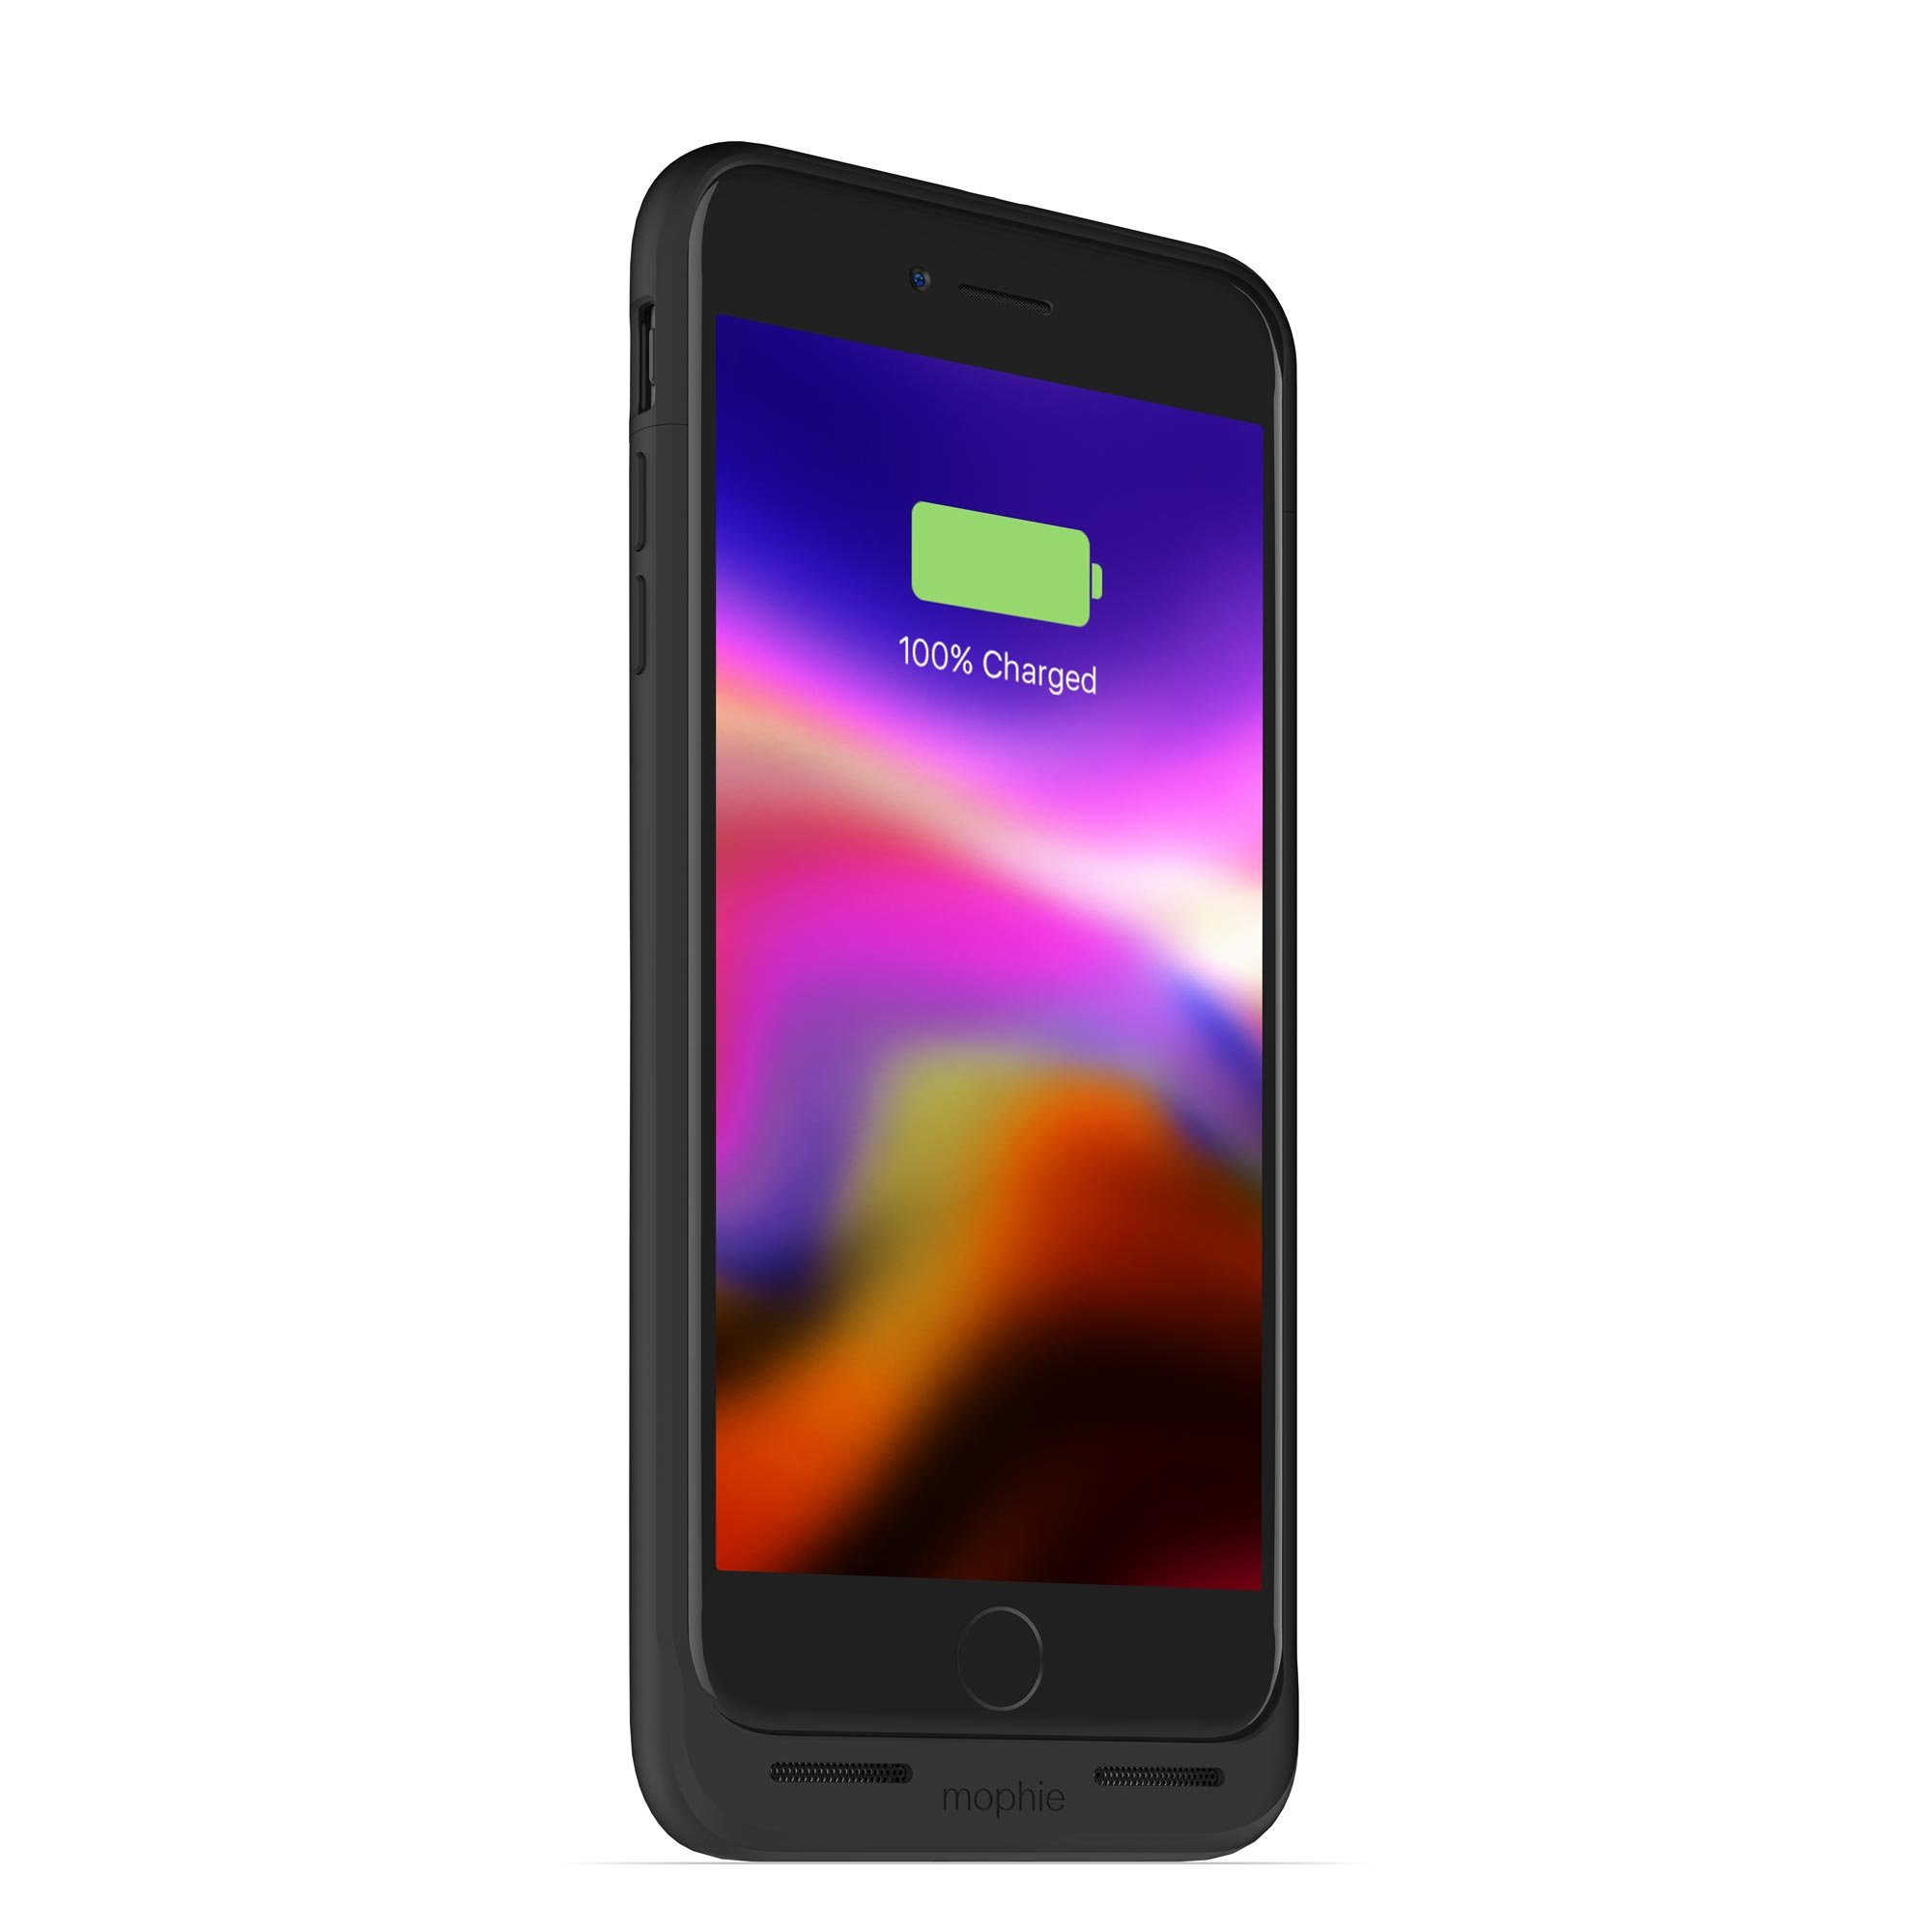 mophie juice pack wireless - Charge Force Wireless Power - Wireless Charging Protective Battery Pack Case for iPhone 8 – Black by mophie (Image #5)